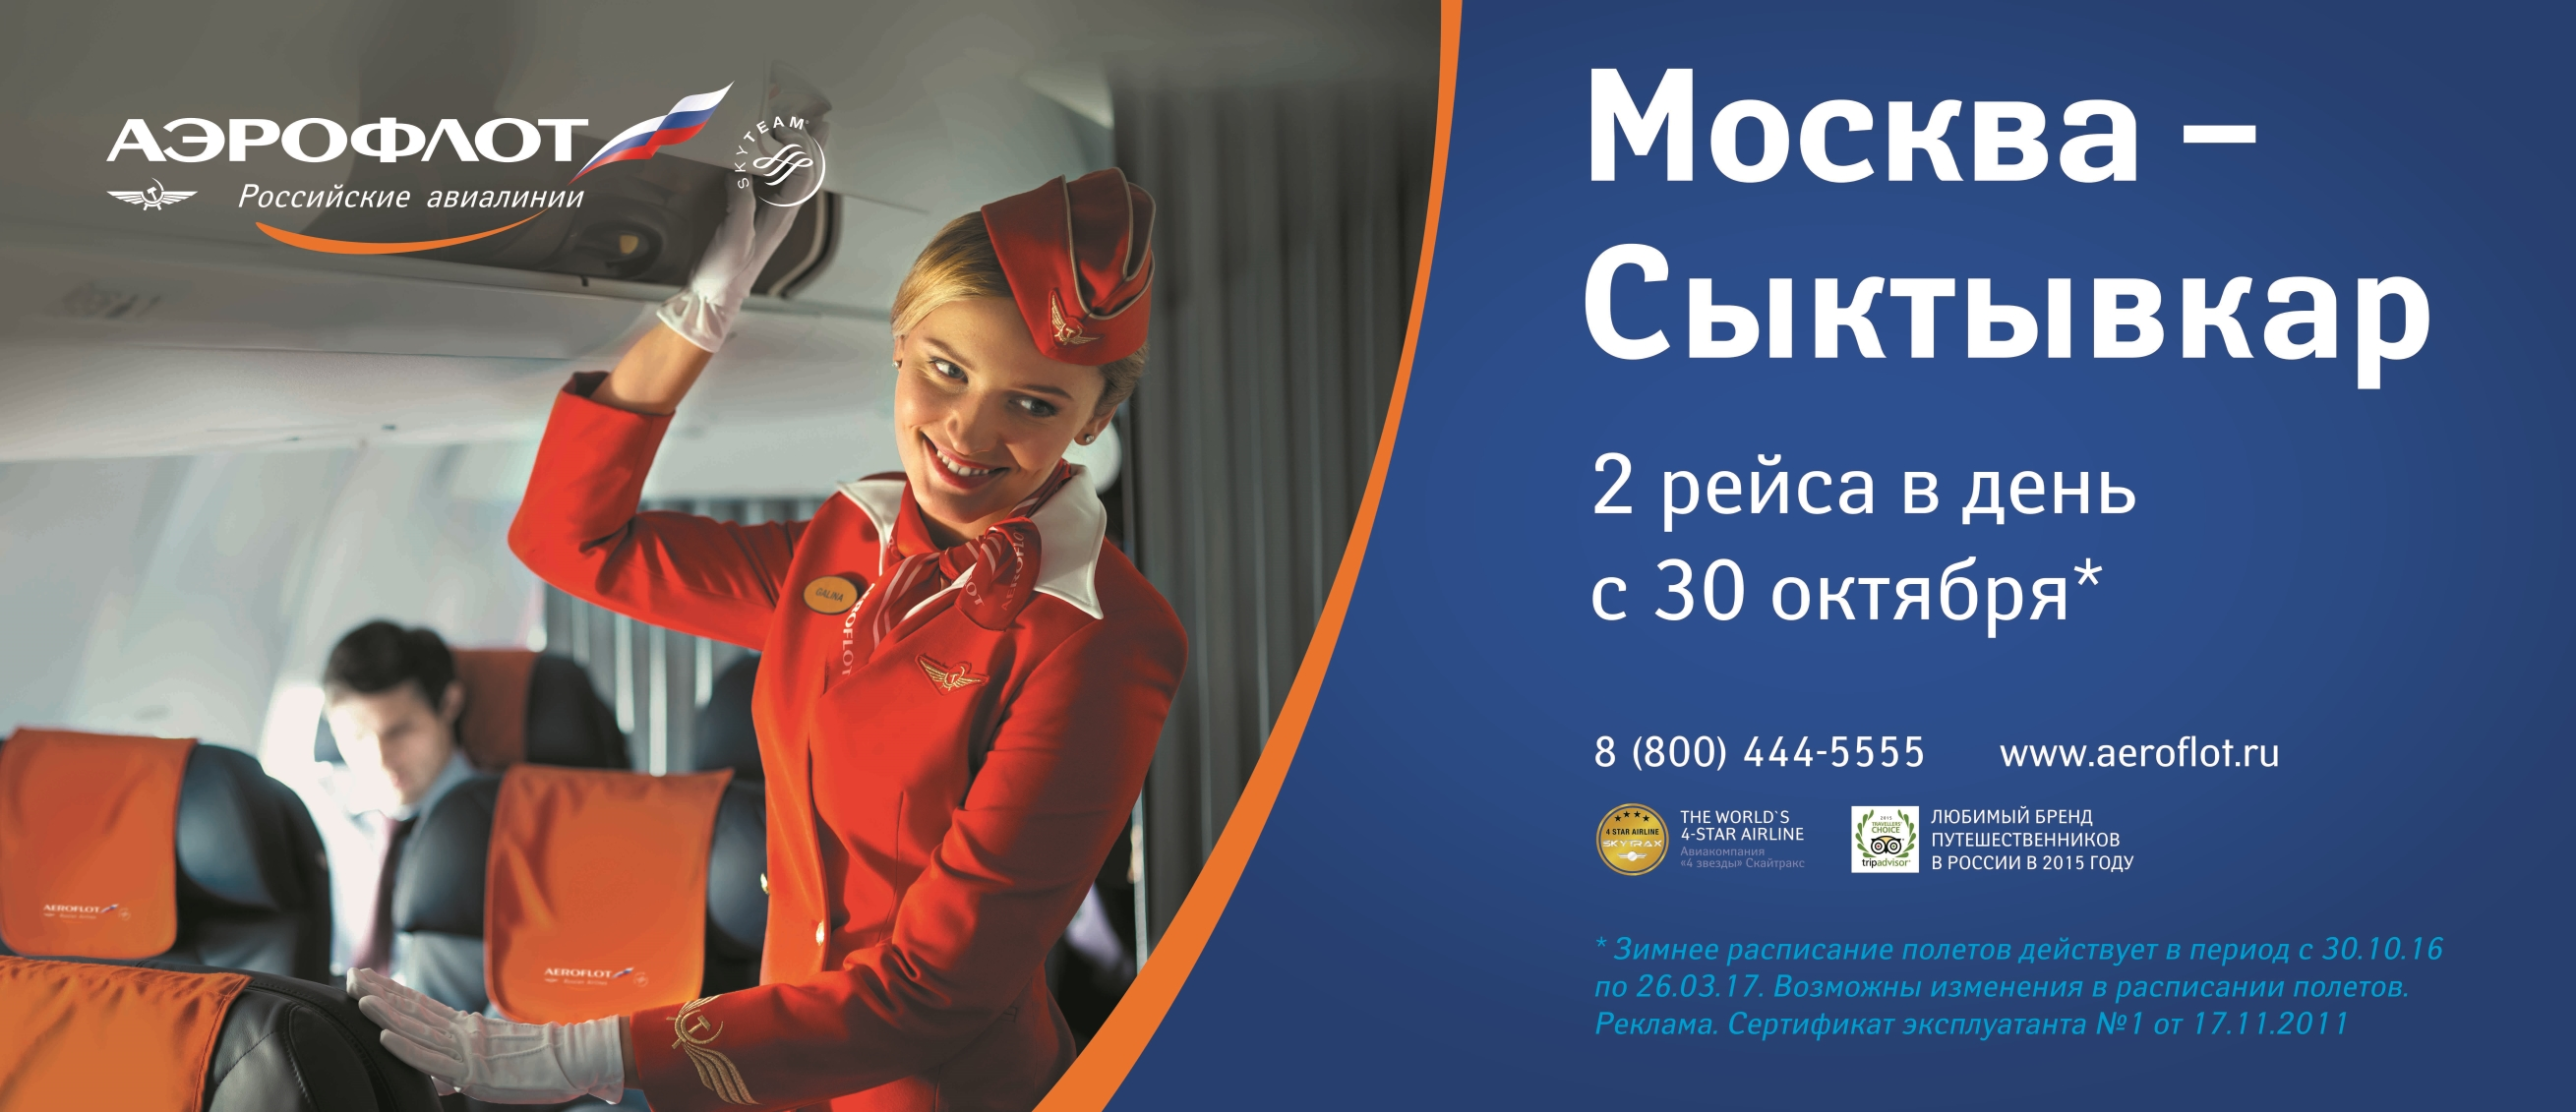 Banner for Aeroflot